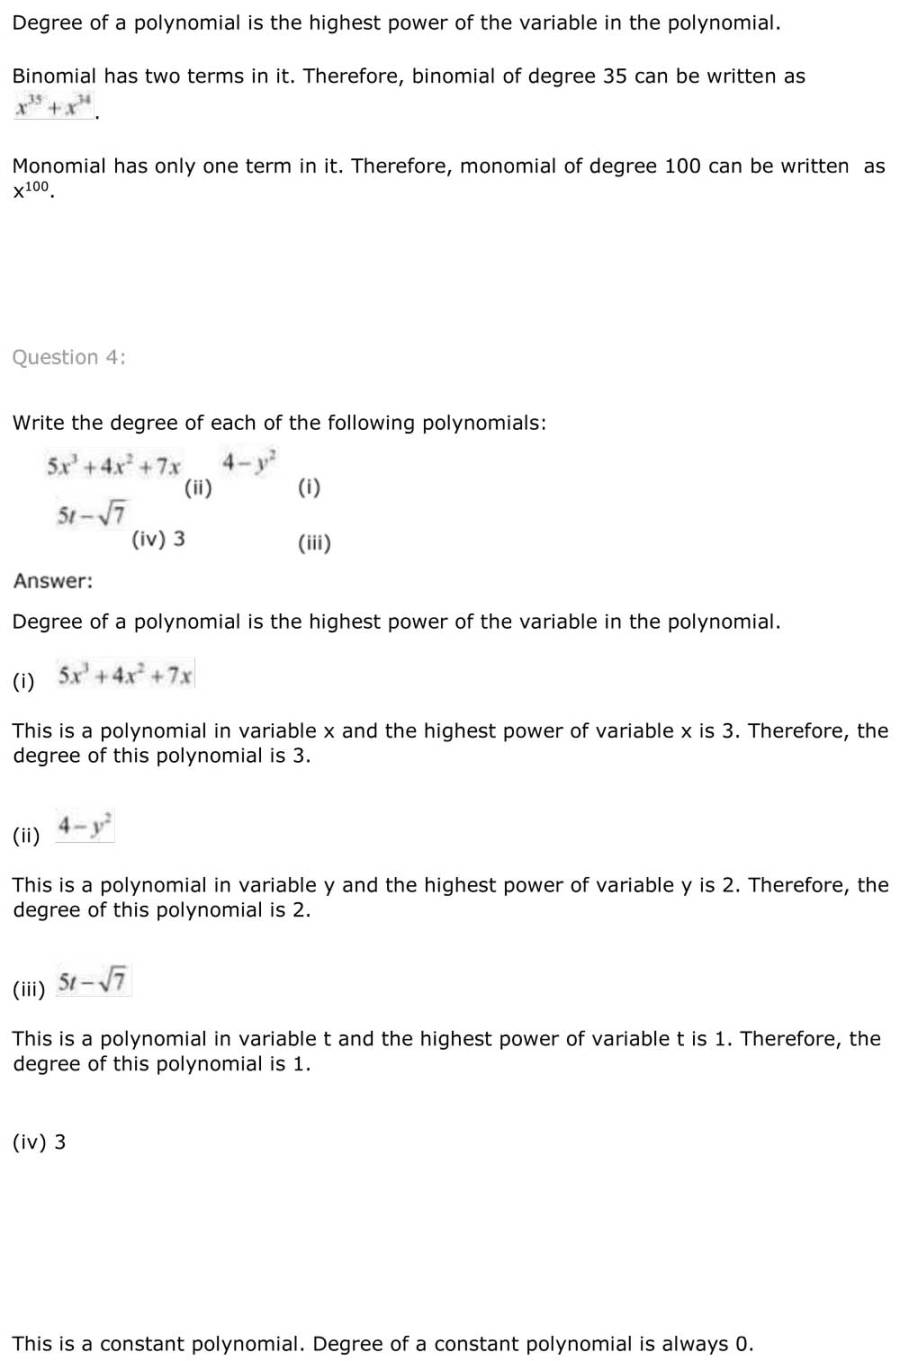 ncert solutions for class 9 maths chapter 2 polynomial 3